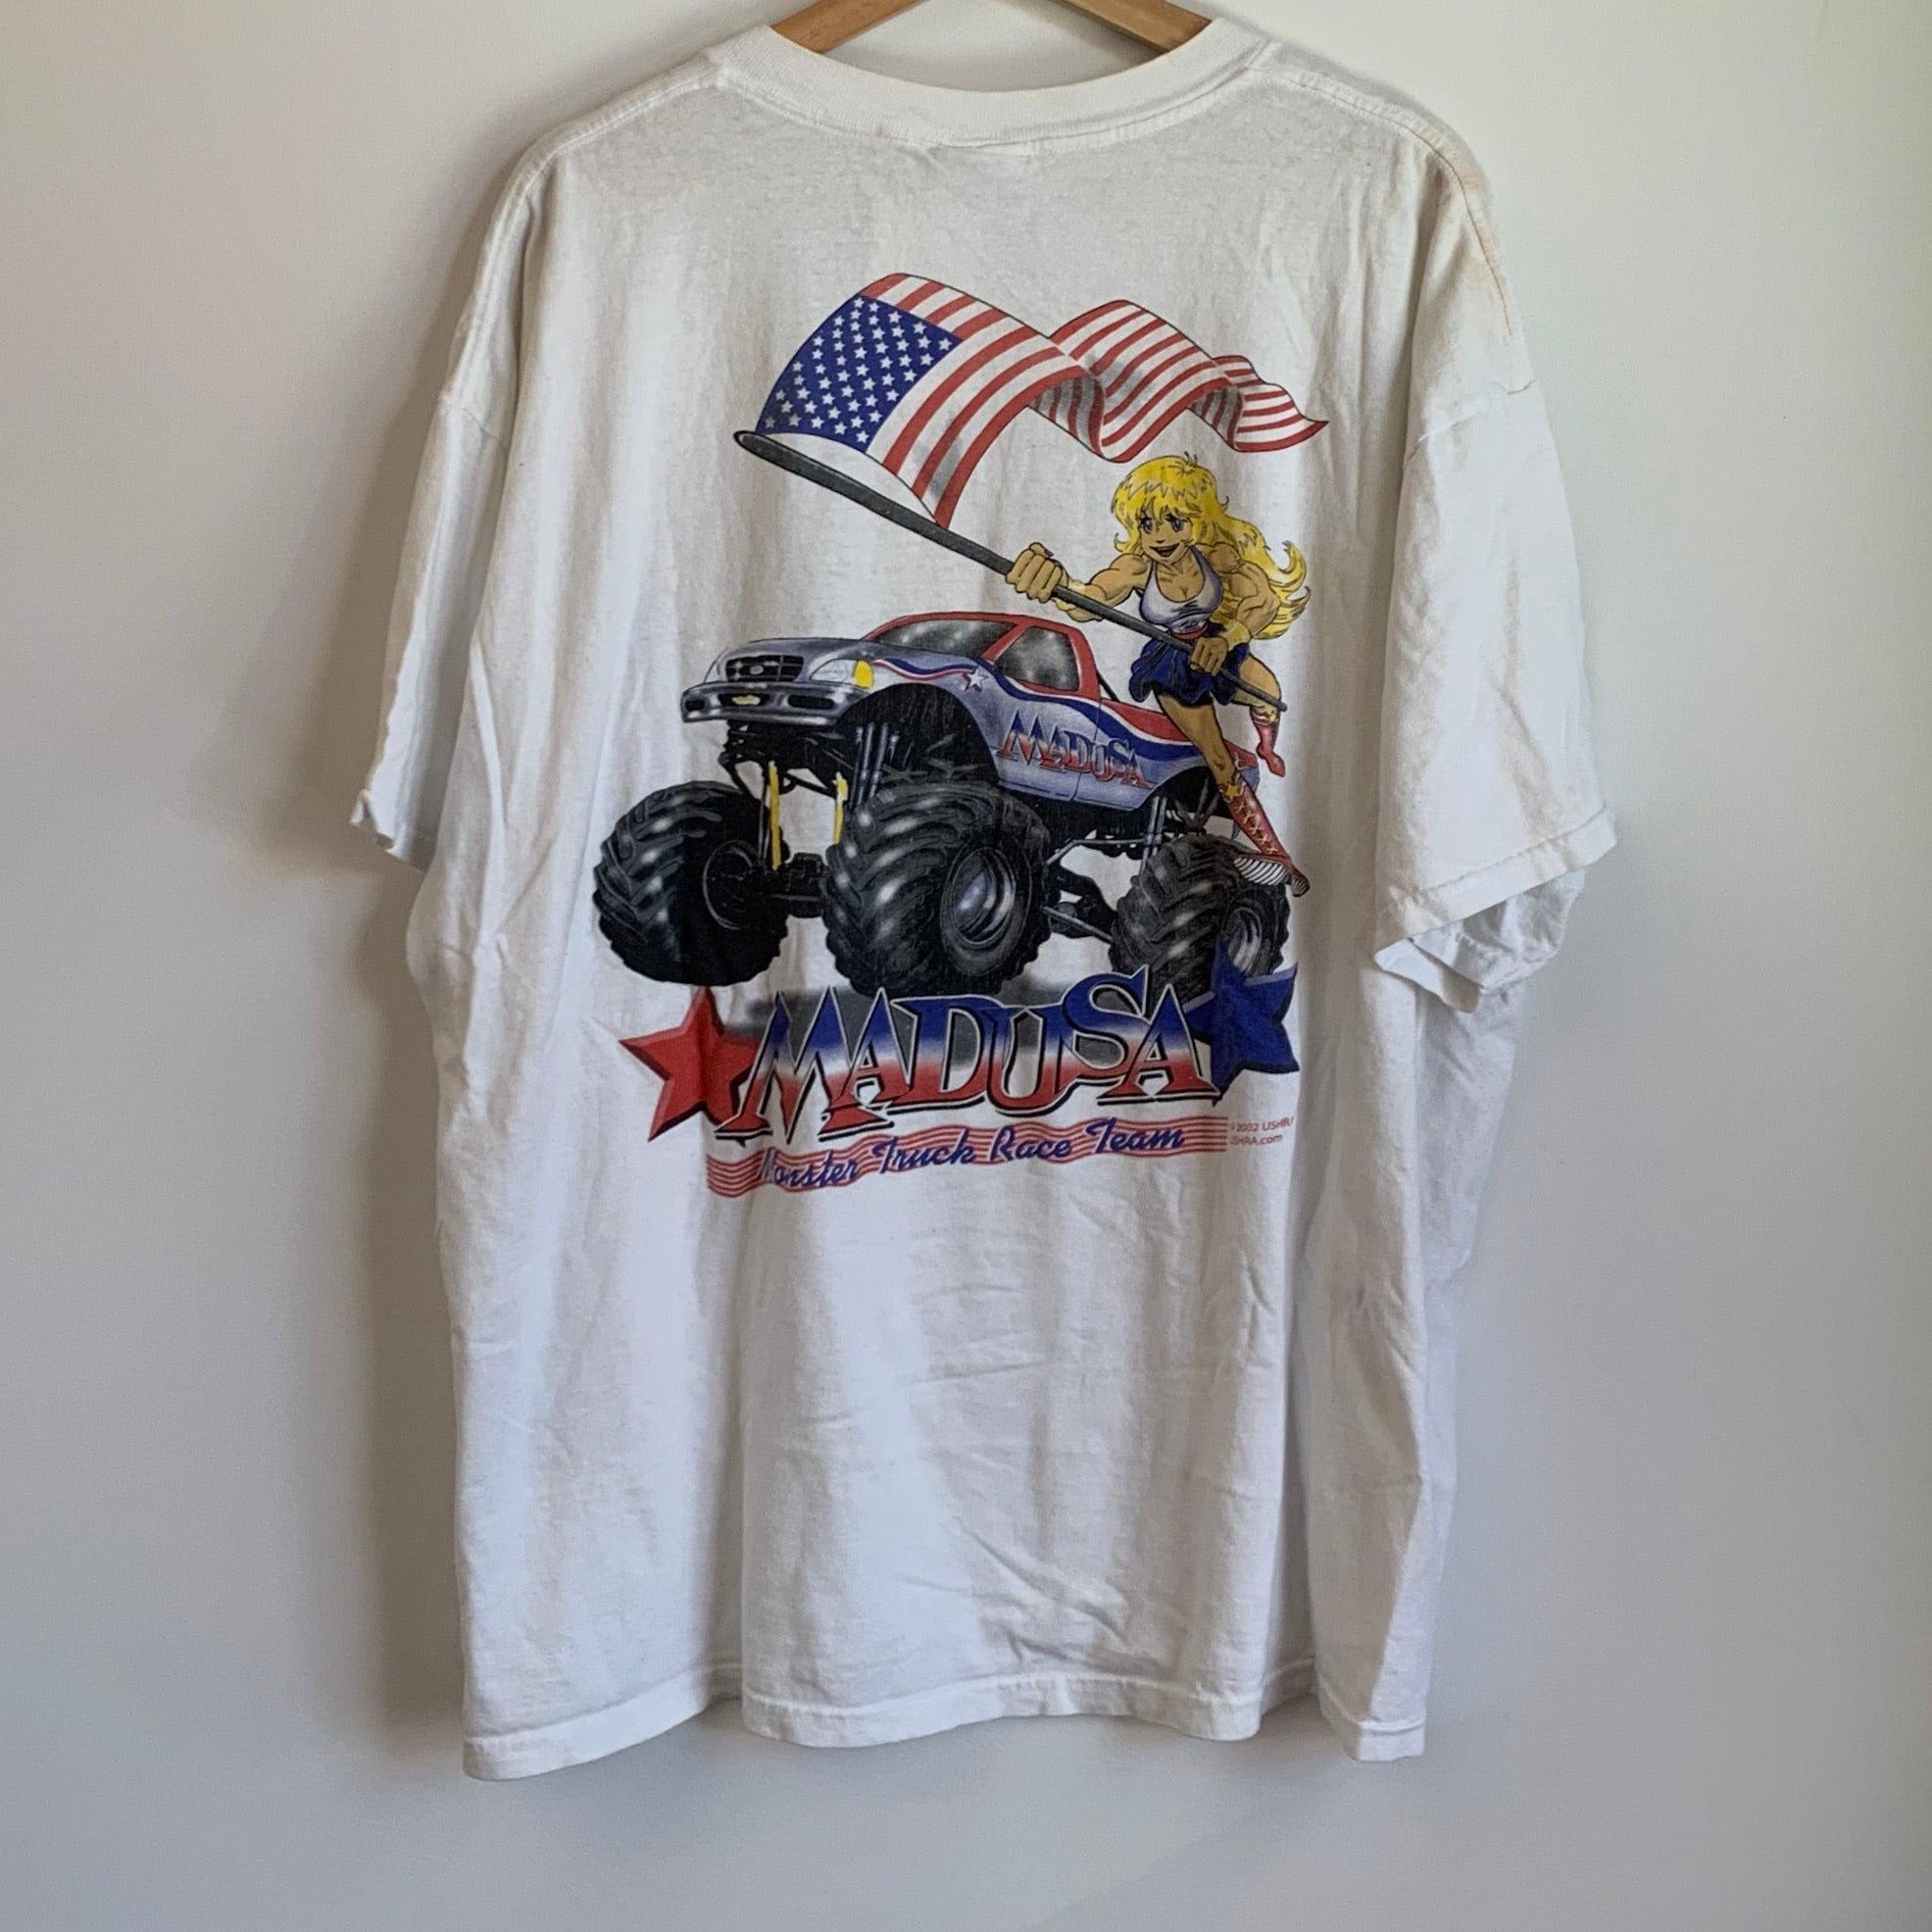 Mad USA Monster Truck Race Team White Tee Shirt